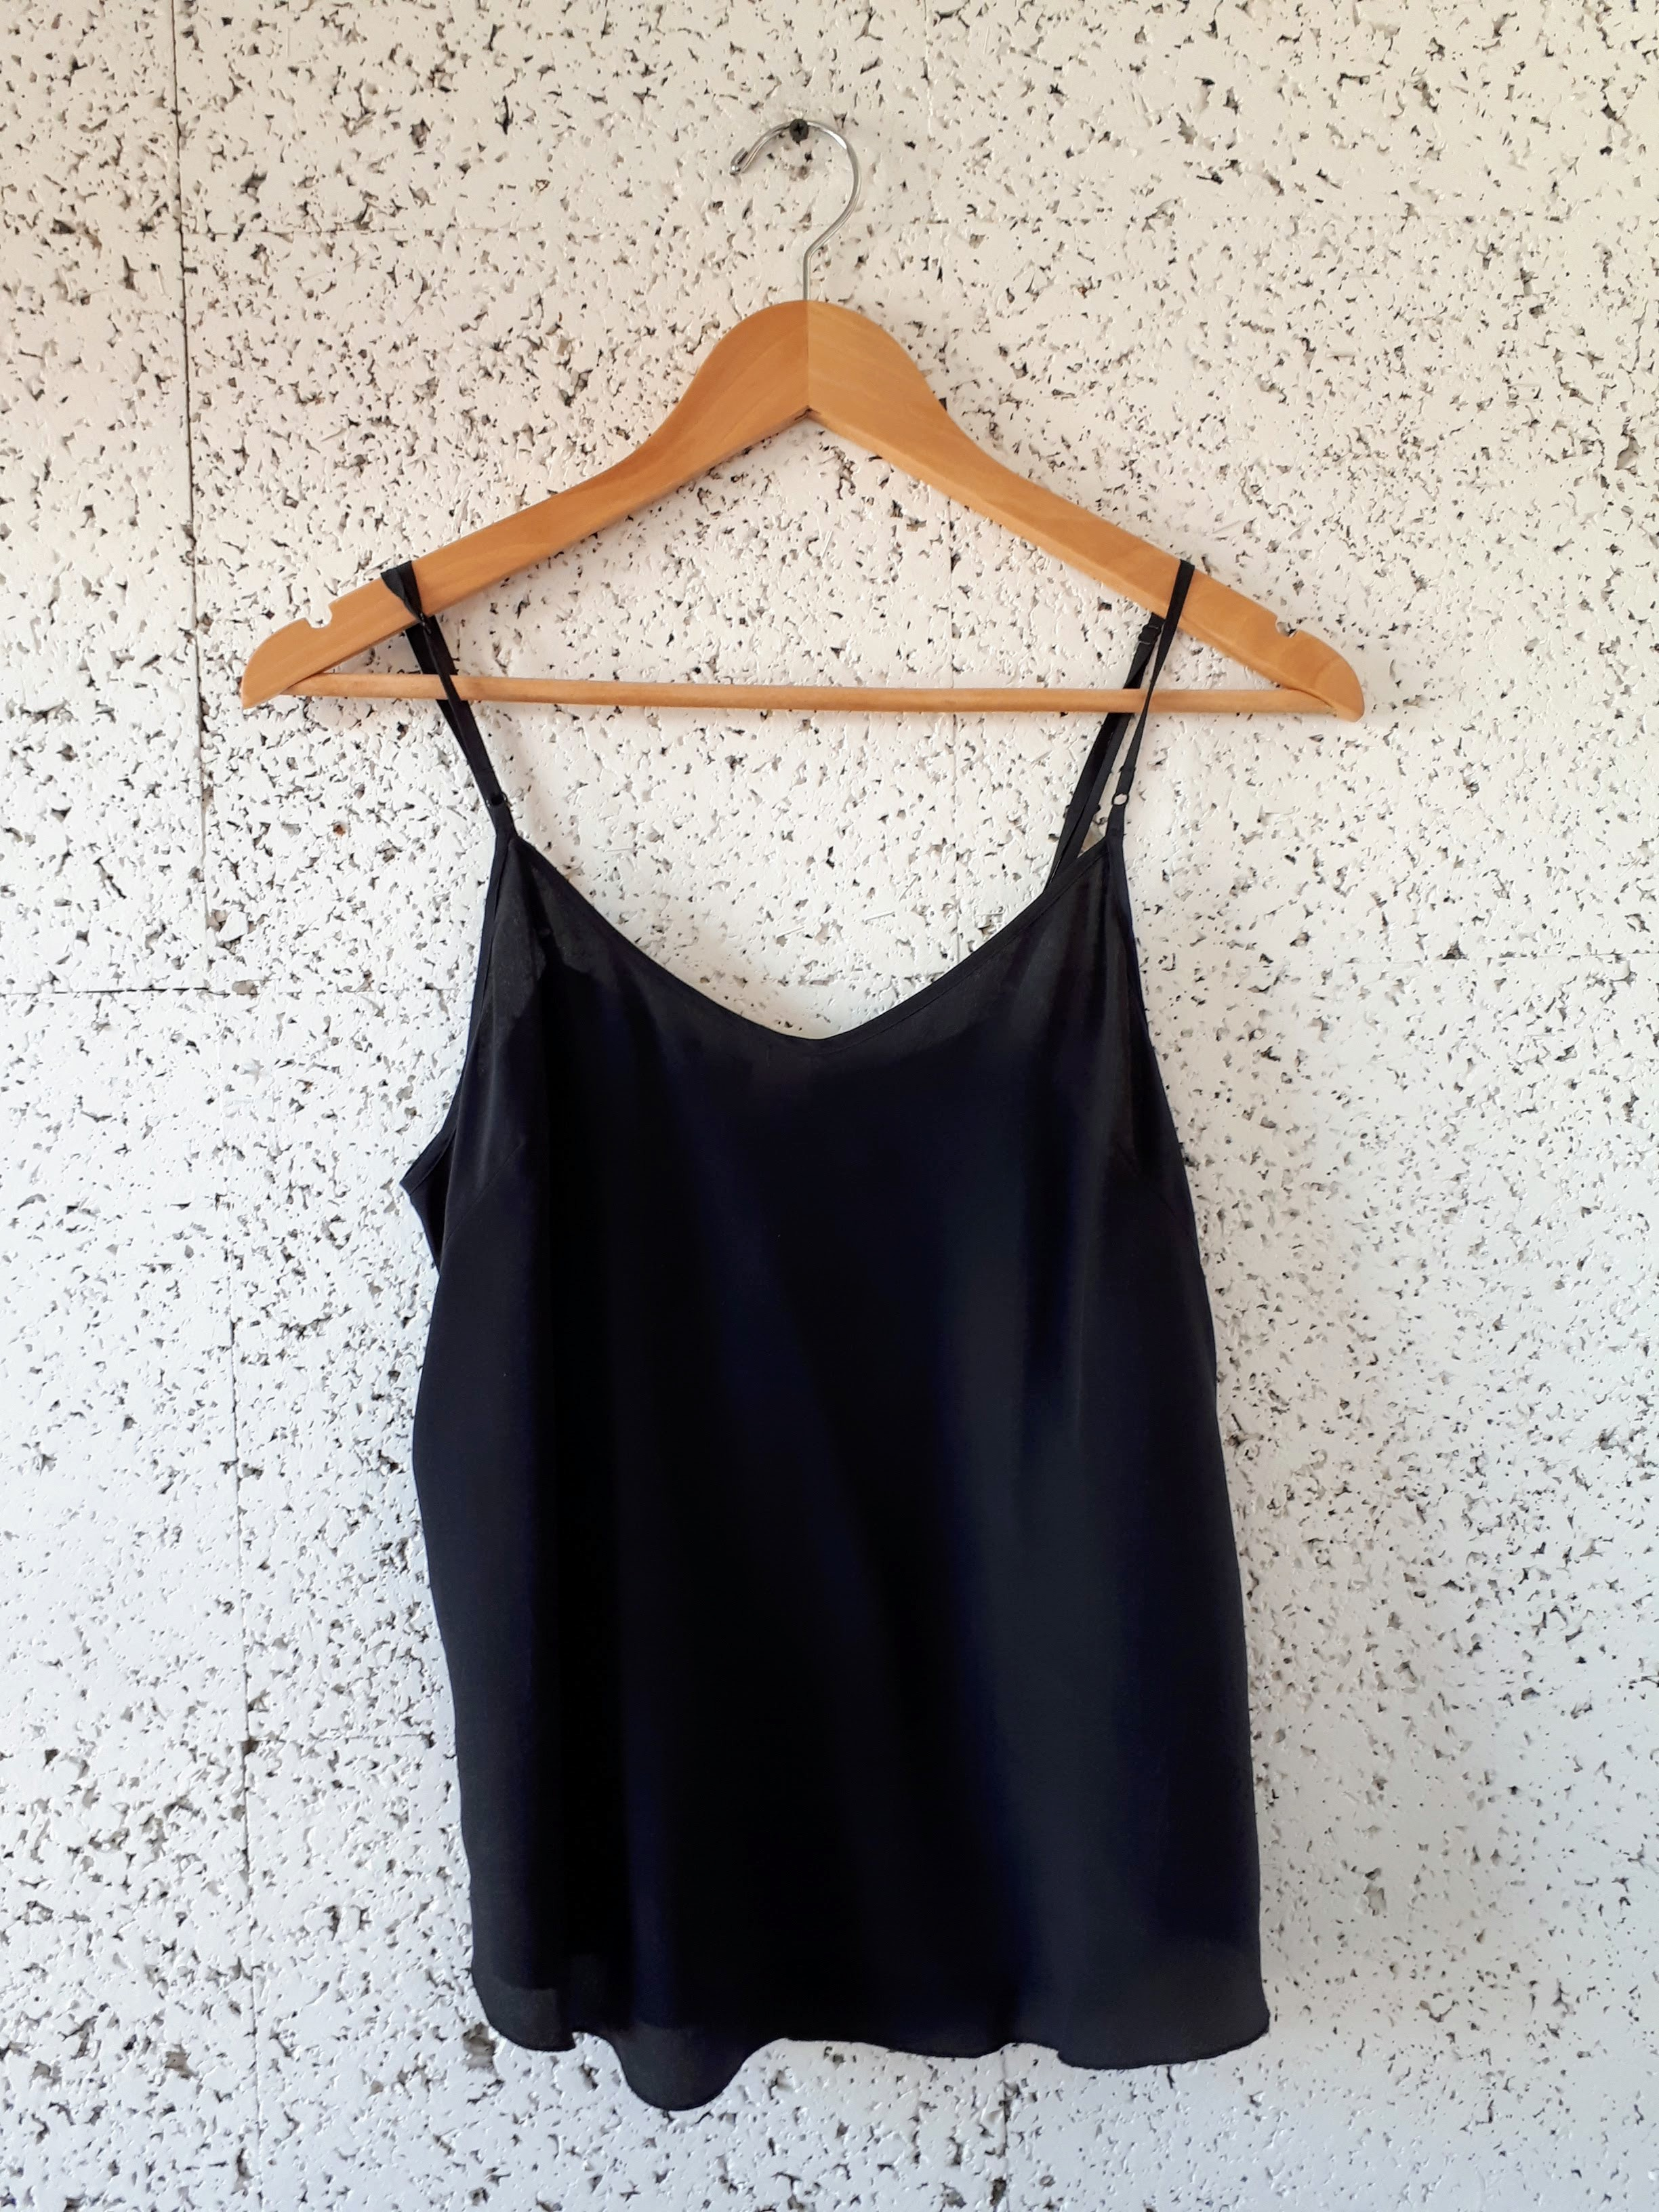 Wilfred top; Size M, $24